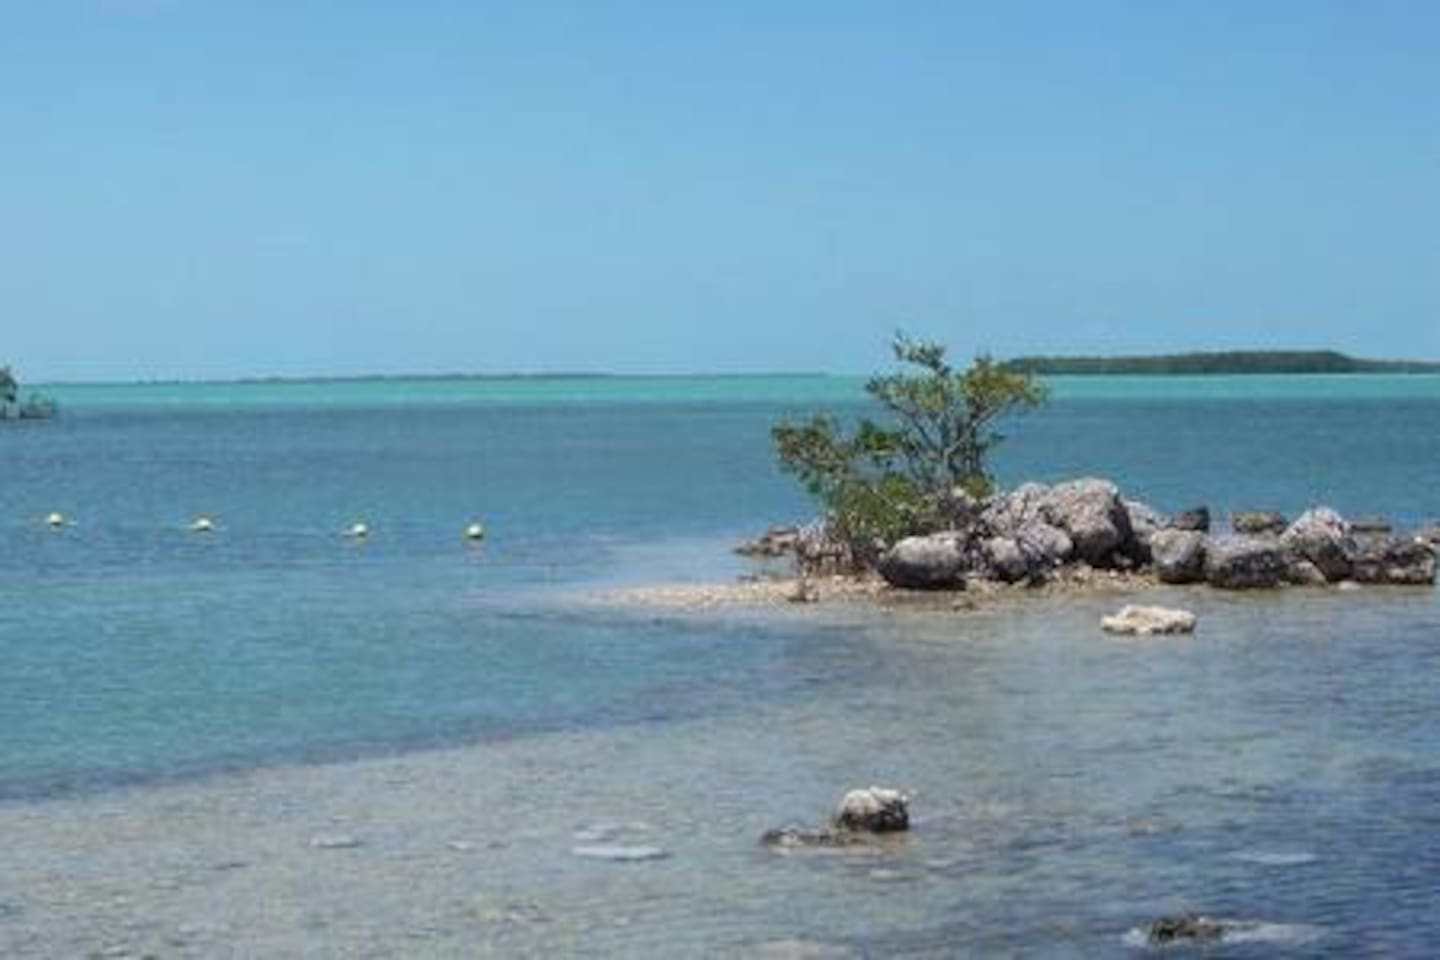 A view of Key Largo